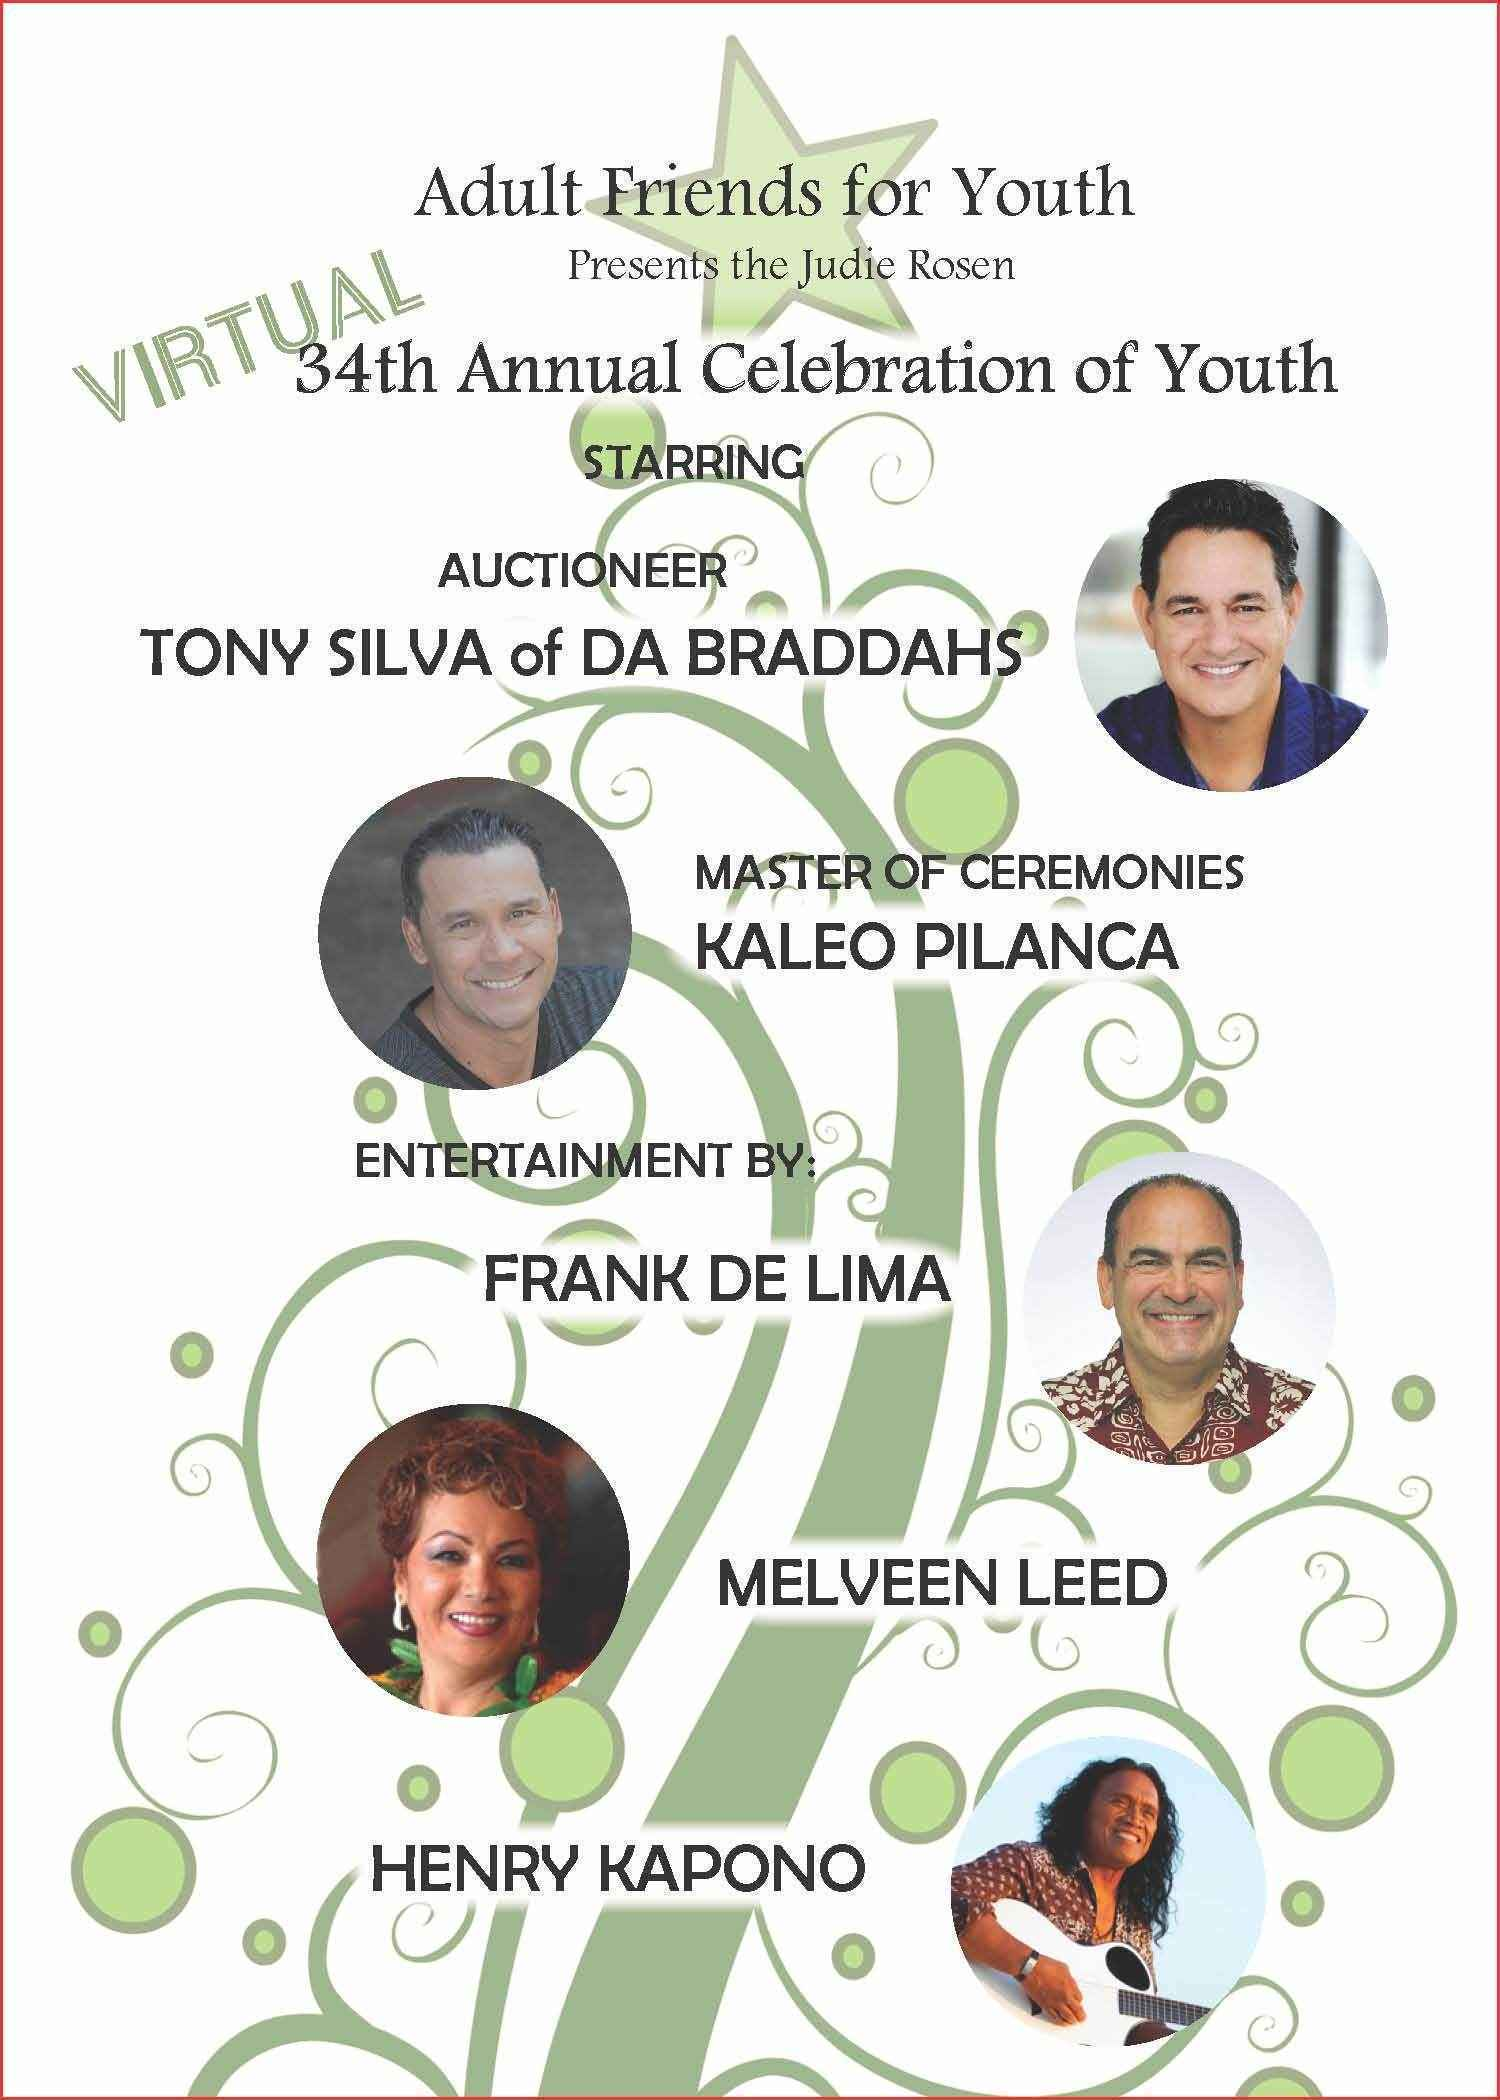 Adult Friends for Youth 34th Celebration of Youth Dinner Auction Fundraiser image